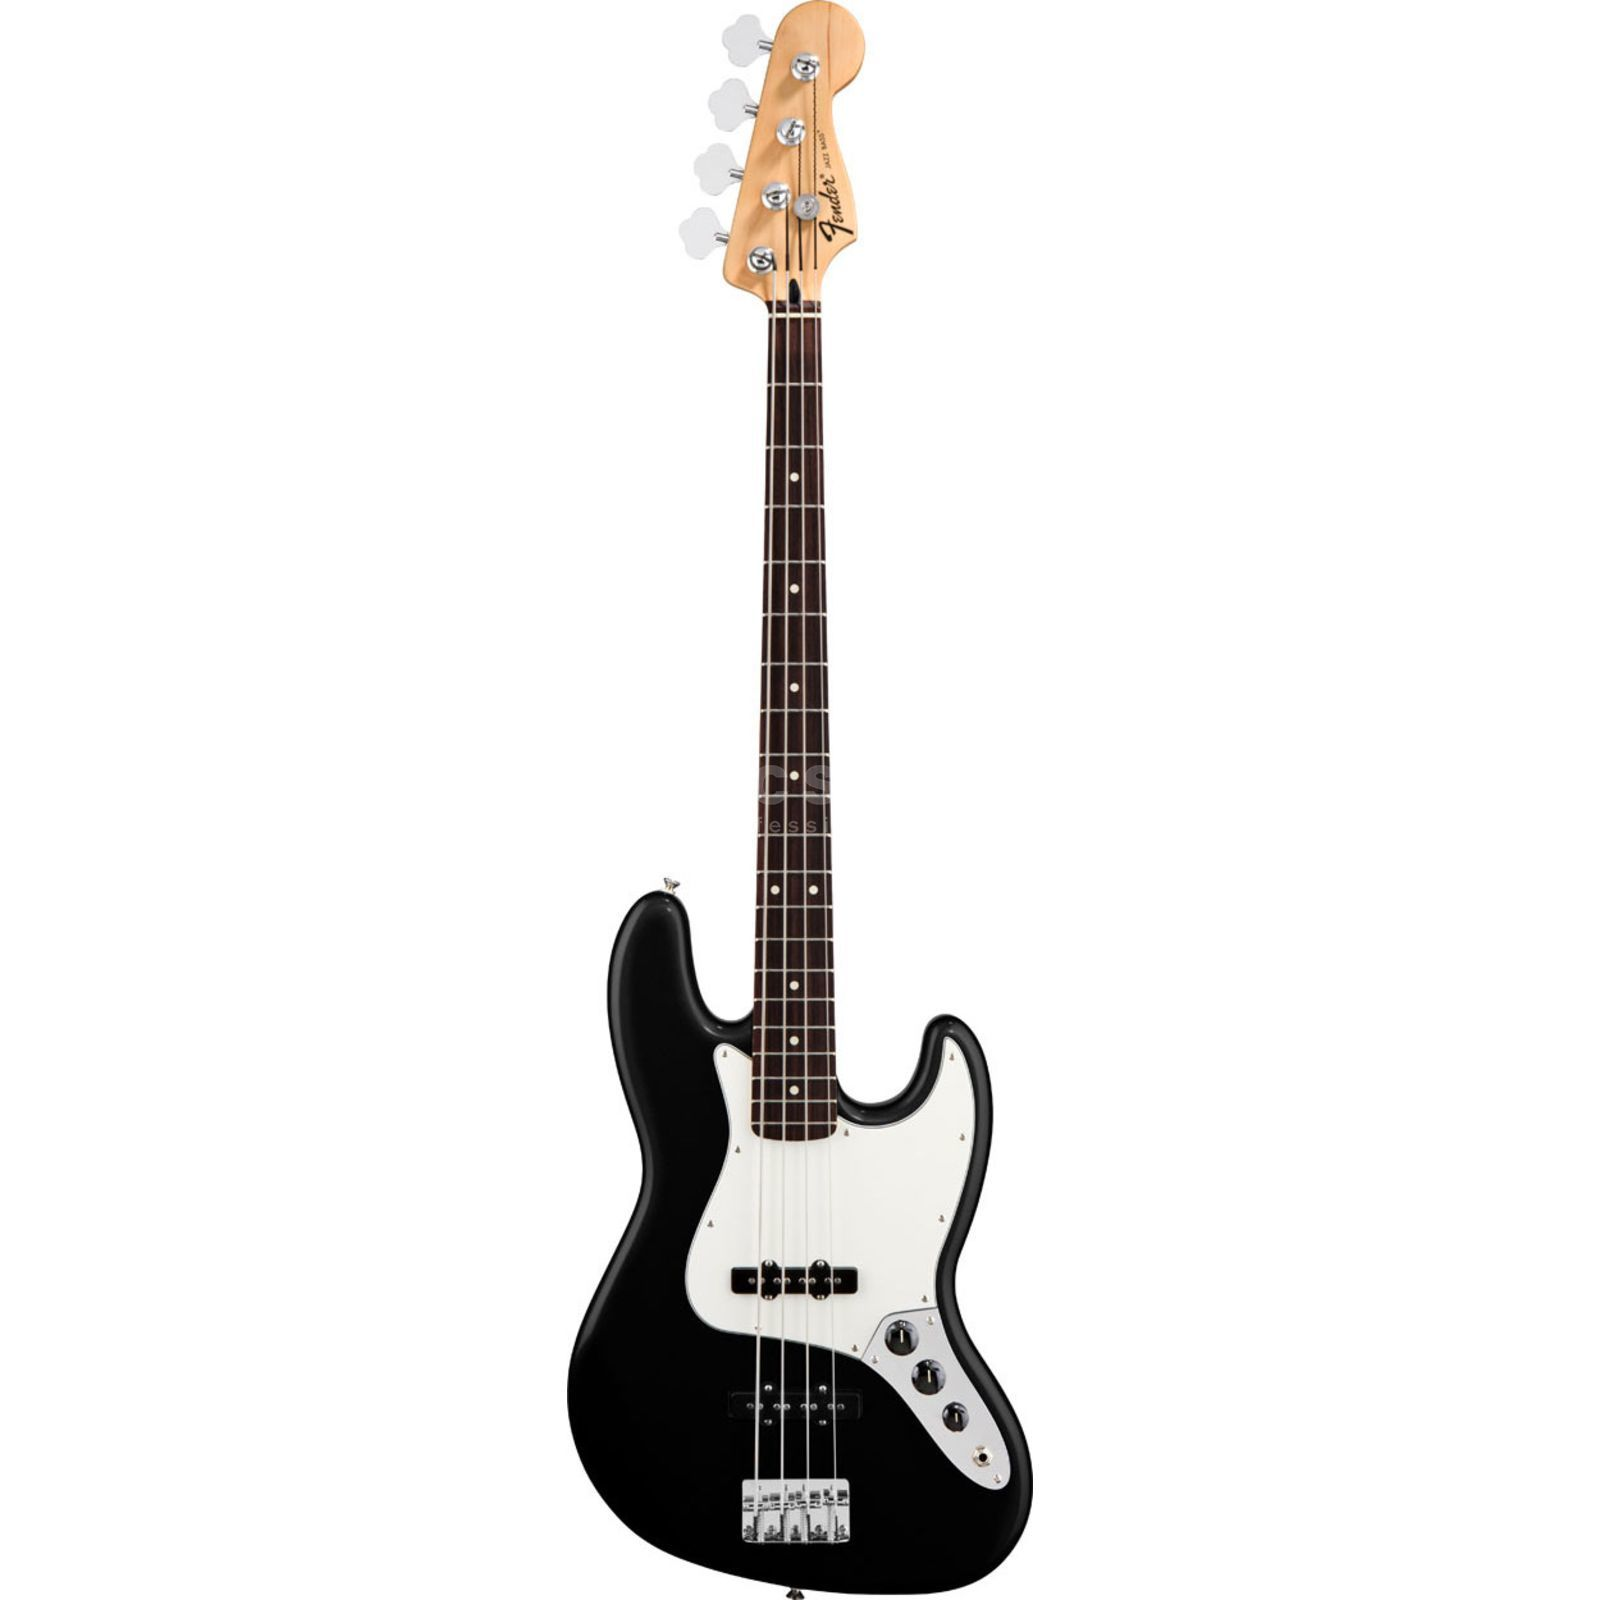 Fender Standard Jazz Bass RW Black Product Image